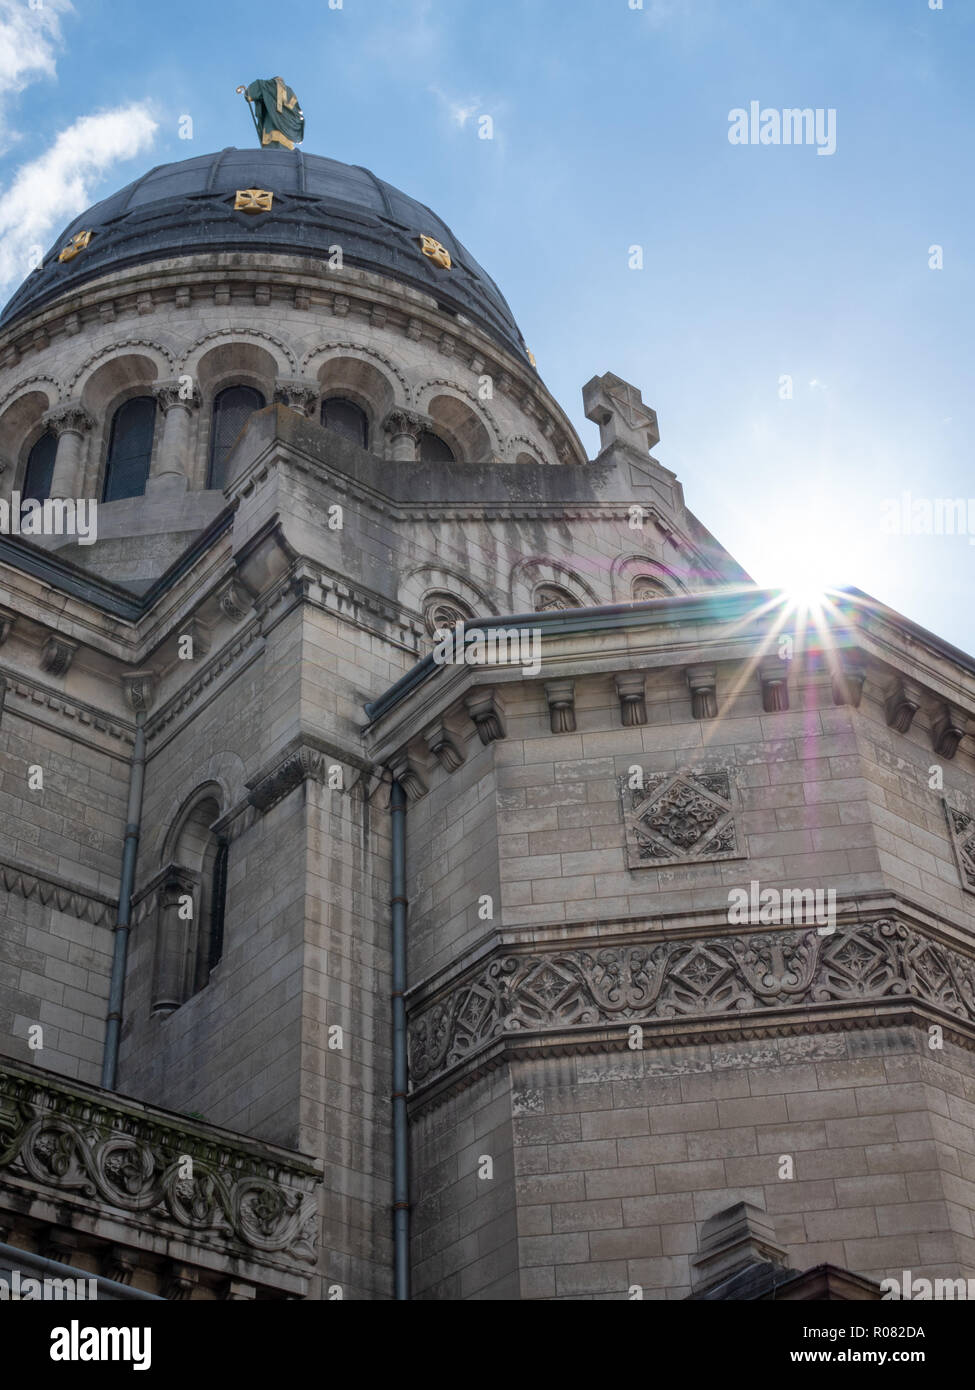 Basilica of St Martin. It's a Roman Catholic basilica dedicated to Saint Martin of Tours, in France, on whose tomb it was built. Stock Photo